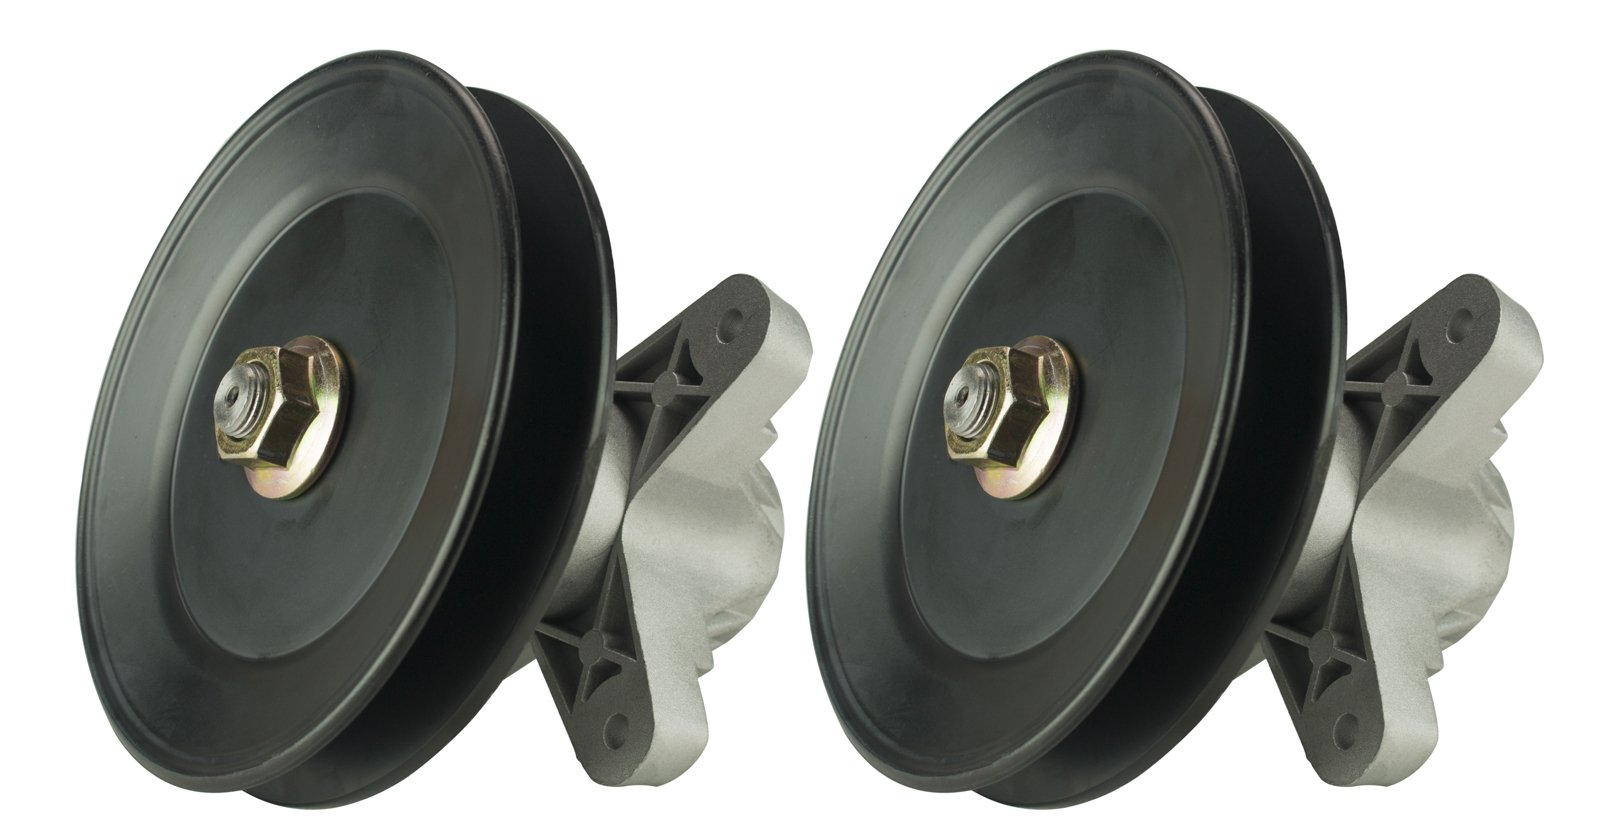 Erie Tools Two (2) Pack Spindle Assembly Fits Cub Cadet LT1042 MTD 918-04456, 918-04456A, 918-04456B, 918-04461, 618-04456, 618-04456A